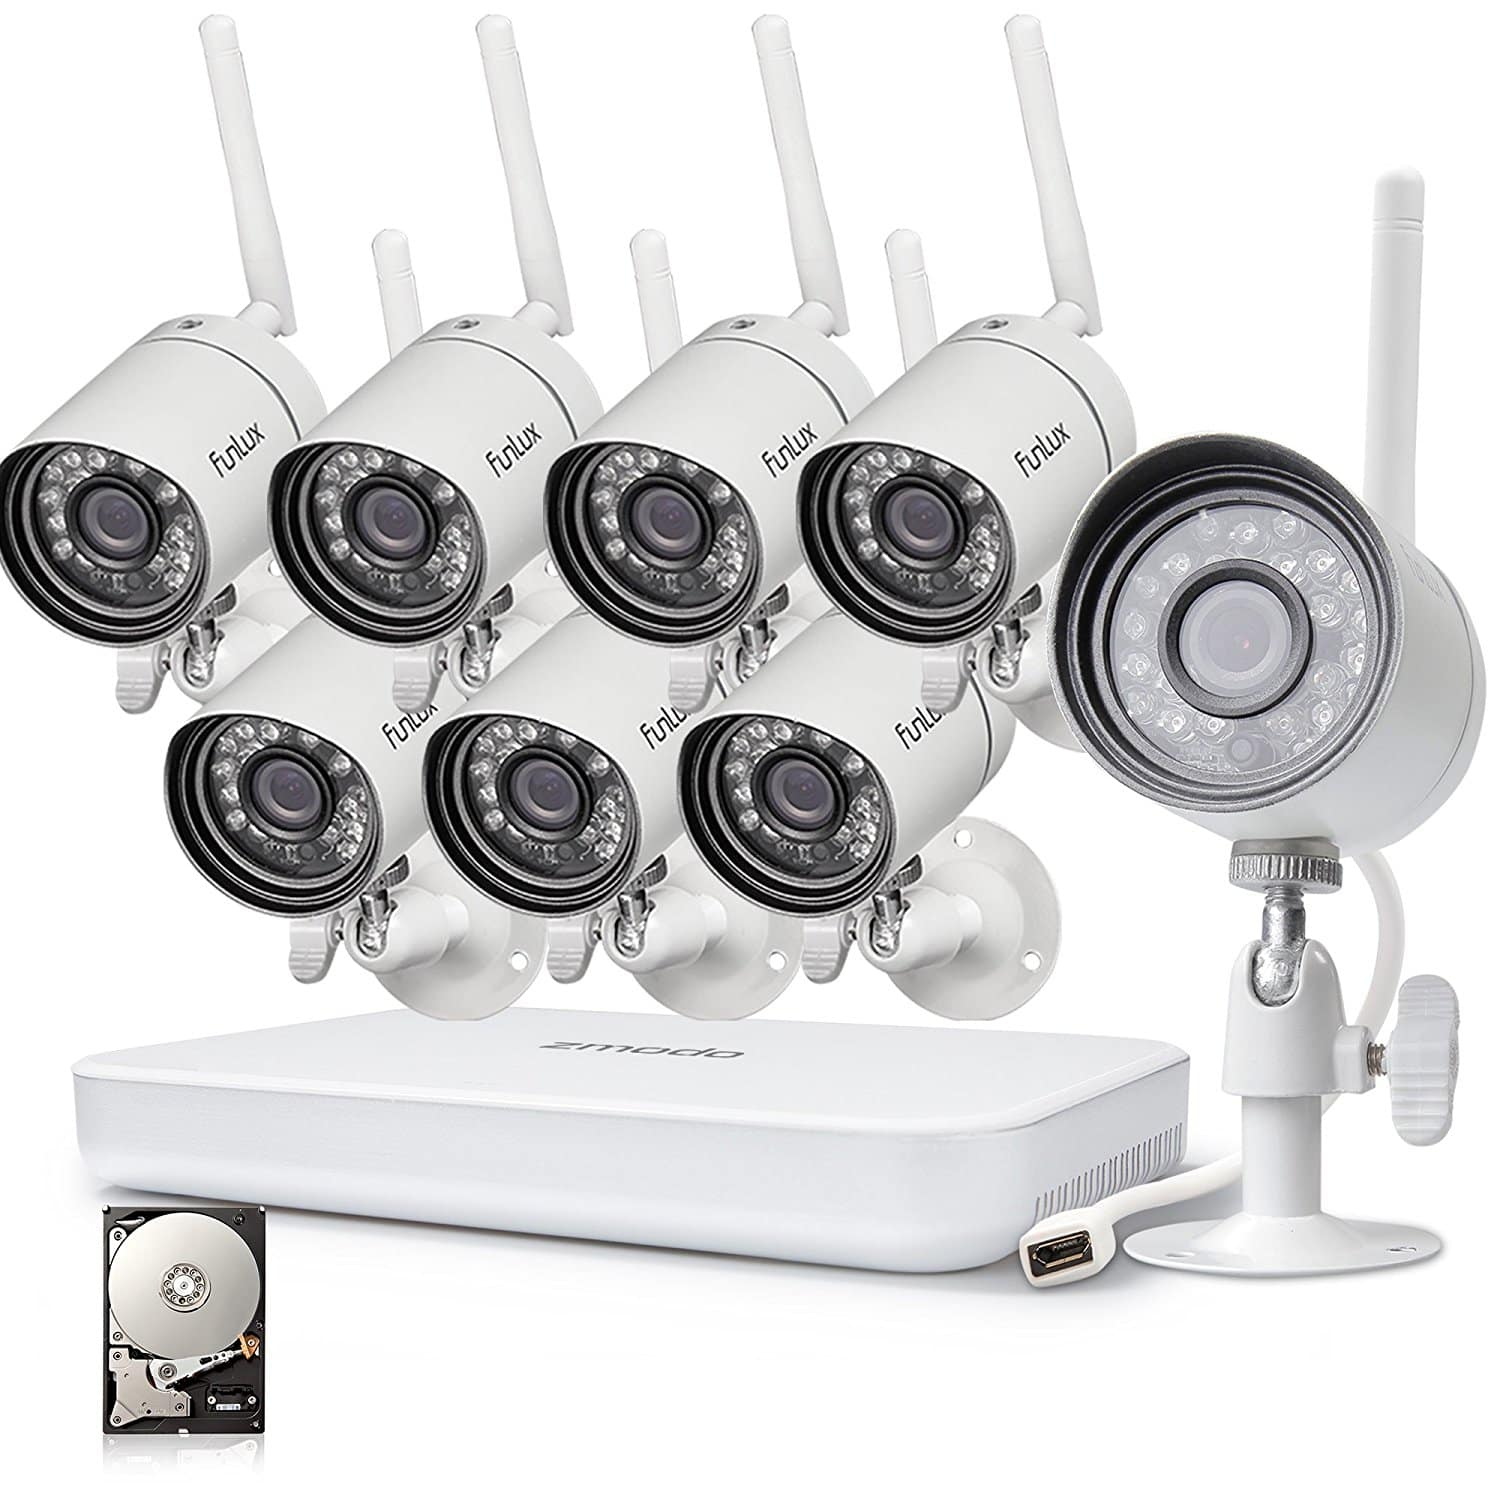 8Pk 720p HD Indoor/Outdoor Wireless Security Camera w/ 8 Channel 1080p HDMI NVR and 1TB Hard Drive $212.39